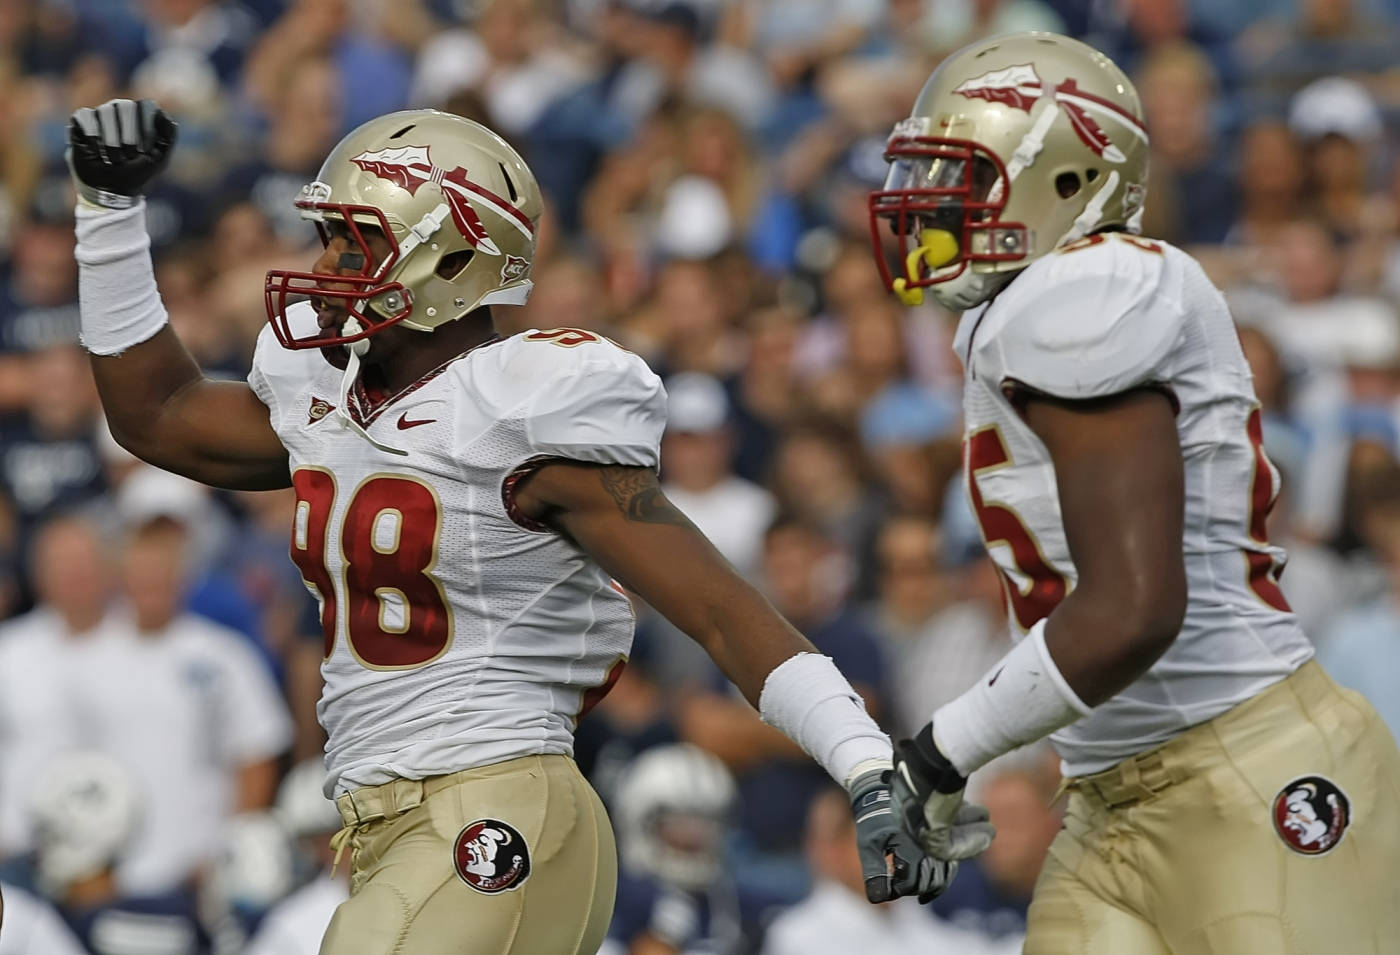 Florida State's Beau Reliford, left and Ja'Baris Little celebrate a touchdown against BYU during a NCAA football game at LaVell Edwards Stadium in Provo, Utah, Saturday, Sept. 19, 2009. (AP Photo/George Frey)